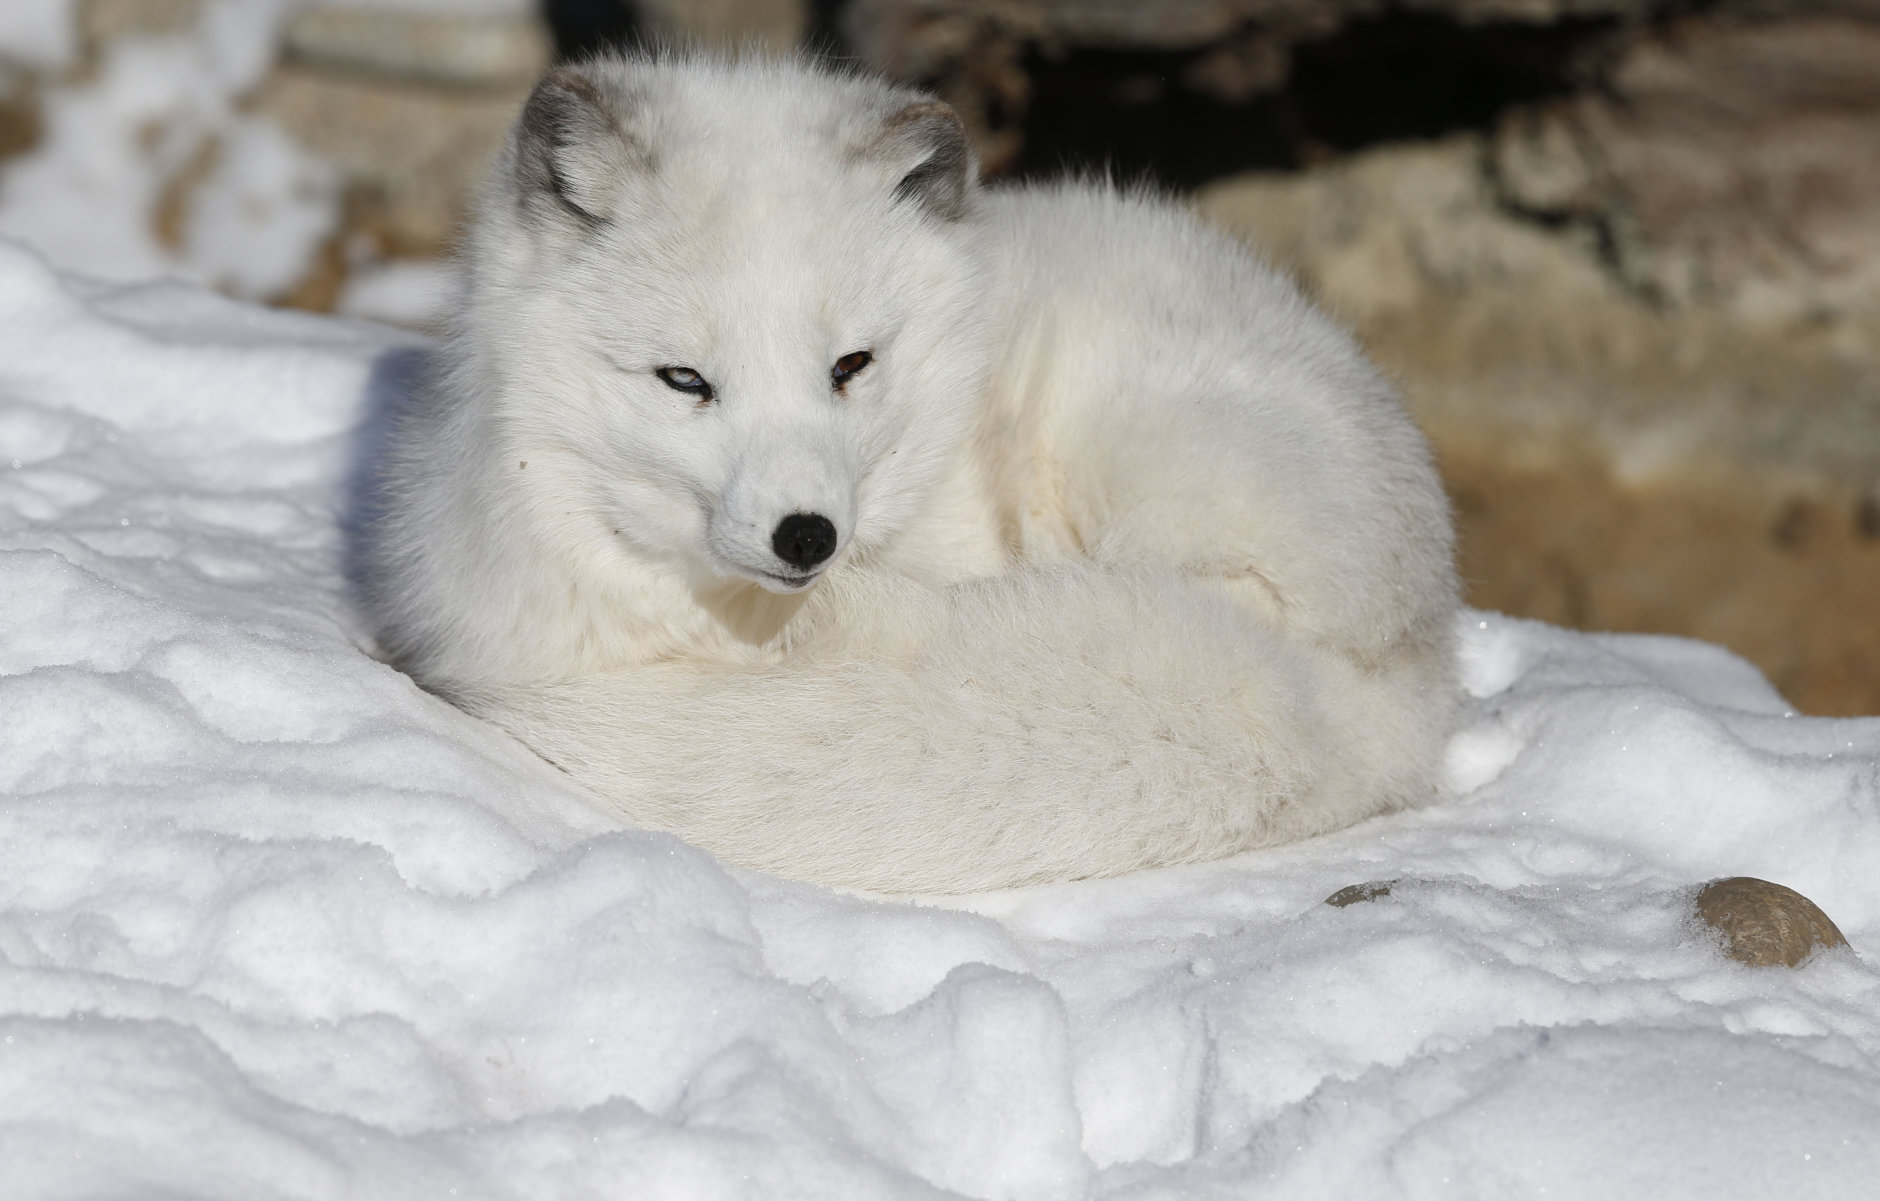 Nola the arctic fox curls up on the snow, at Denver Zoo, which was closed to the public due to extreme cold, in Denver Thursday Dec. 5, 2013. A wintry storm pushing through the western half of the country has brought bitterly cold temperatures that prompted safety warnings for residents in the Rockies and threatened crops as far south as California. (AP Photo/Brennan Linsley)